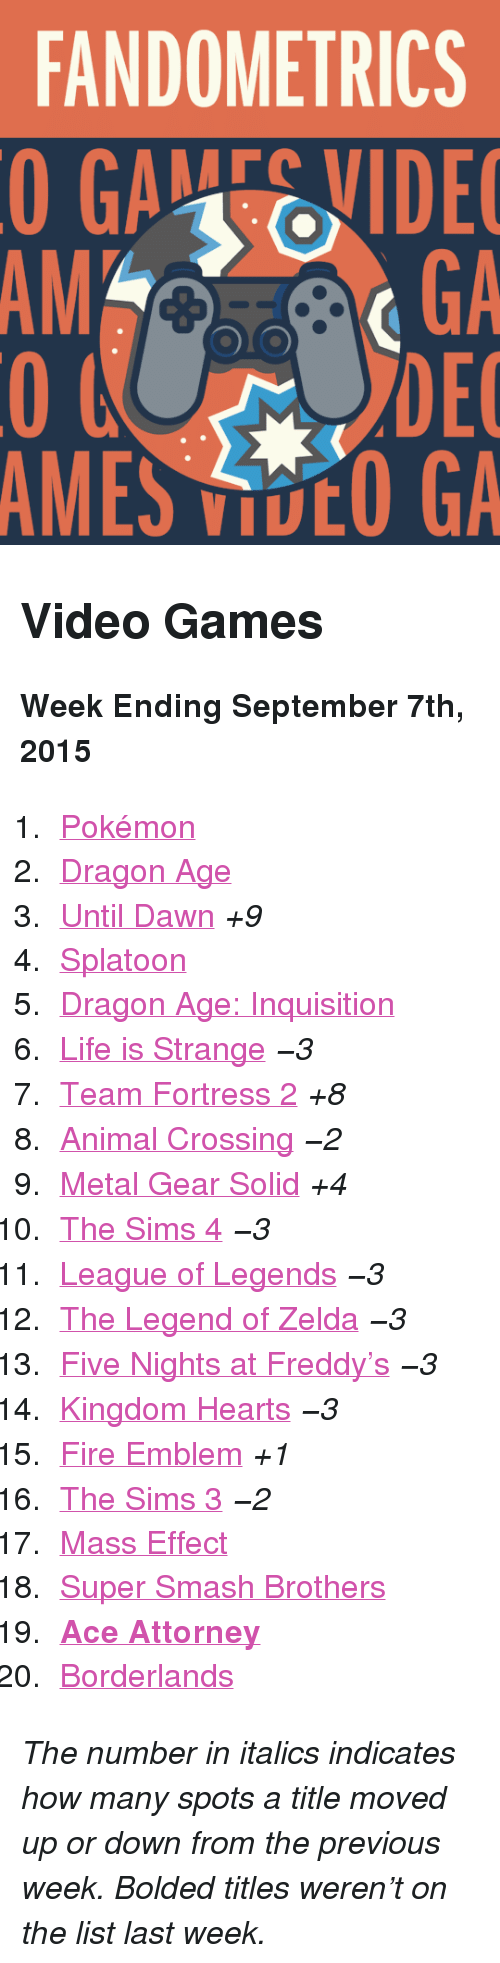 "Five Nights: FANDOMETRICS  GAEVIDE  GA  DEC  AMES VOO GA  AM <h2>Video Games</h2><p><b>Week Ending September 7th, 2015</b></p><ol><li><a href=""http://www.tumblr.com/search/pokemon"">Pokémon</a></li>  <li><a href=""http://www.tumblr.com/search/dragon%20age"">Dragon Age</a></li>  <li><a href=""http://www.tumblr.com/search/until%20dawn"">Until Dawn</a> <i>+9</i></li>  <li><a href=""http://www.tumblr.com/search/splatoon"">Splatoon</a></li>  <li><a href=""http://www.tumblr.com/search/dragon%20age%20inquisition"">Dragon Age: Inquisition</a></li>  <li><a href=""http://www.tumblr.com/search/life%20is%20strange"">Life is Strange</a> <i>−3</i></li>  <li><a href=""http://www.tumblr.com/search/tf2"">Team Fortress 2</a> <i>+8</i></li>  <li><a href=""http://www.tumblr.com/search/acnl"">Animal Crossing</a> <i>−2</i></li>  <li><a href=""http://www.tumblr.com/search/metal%20gear%20solid"">Metal Gear Solid</a> <i>+4</i></li>  <li><a href=""http://www.tumblr.com/search/sims%204"">The Sims 4</a> <i>−3</i></li>  <li><a href=""http://www.tumblr.com/search/league%20of%20legends"">League of Legends</a> <i>−3</i></li>  <li><a href=""http://www.tumblr.com/search/legend%20of%20zelda"">The Legend of Zelda</a> <i>−3</i></li>  <li><a href=""http://www.tumblr.com/search/five%20nights%20at%20freddy's"">Five Nights at Freddy&rsquo;s</a> <i>−3</i></li>  <li><a href=""http://www.tumblr.com/search/kingdom%20hearts"">Kingdom Hearts</a> <i>−3</i></li>  <li><a href=""http://www.tumblr.com/search/fire%20emblem"">Fire Emblem</a> <i>+1</i></li>  <li><a href=""http://www.tumblr.com/search/sims%203"">The Sims 3</a> <i>−2</i></li>  <li><a href=""http://www.tumblr.com/search/mass%20effect"">Mass Effect</a></li>  <li><a href=""http://www.tumblr.com/search/super%20smash%20bros"">Super Smash Brothers</a></li>  <li><a href=""http://www.tumblr.com/search/ace%20attorney""><b>Ace Attorney</b></a></li>  <li><a href=""http://www.tumblr.com/search/borderlands"">Borderlands</a></li></ol><p><i>The number in italics indicates how many spots a title moved up or down from the previous week. Bolded titles weren't on the list last week.</i></p>"